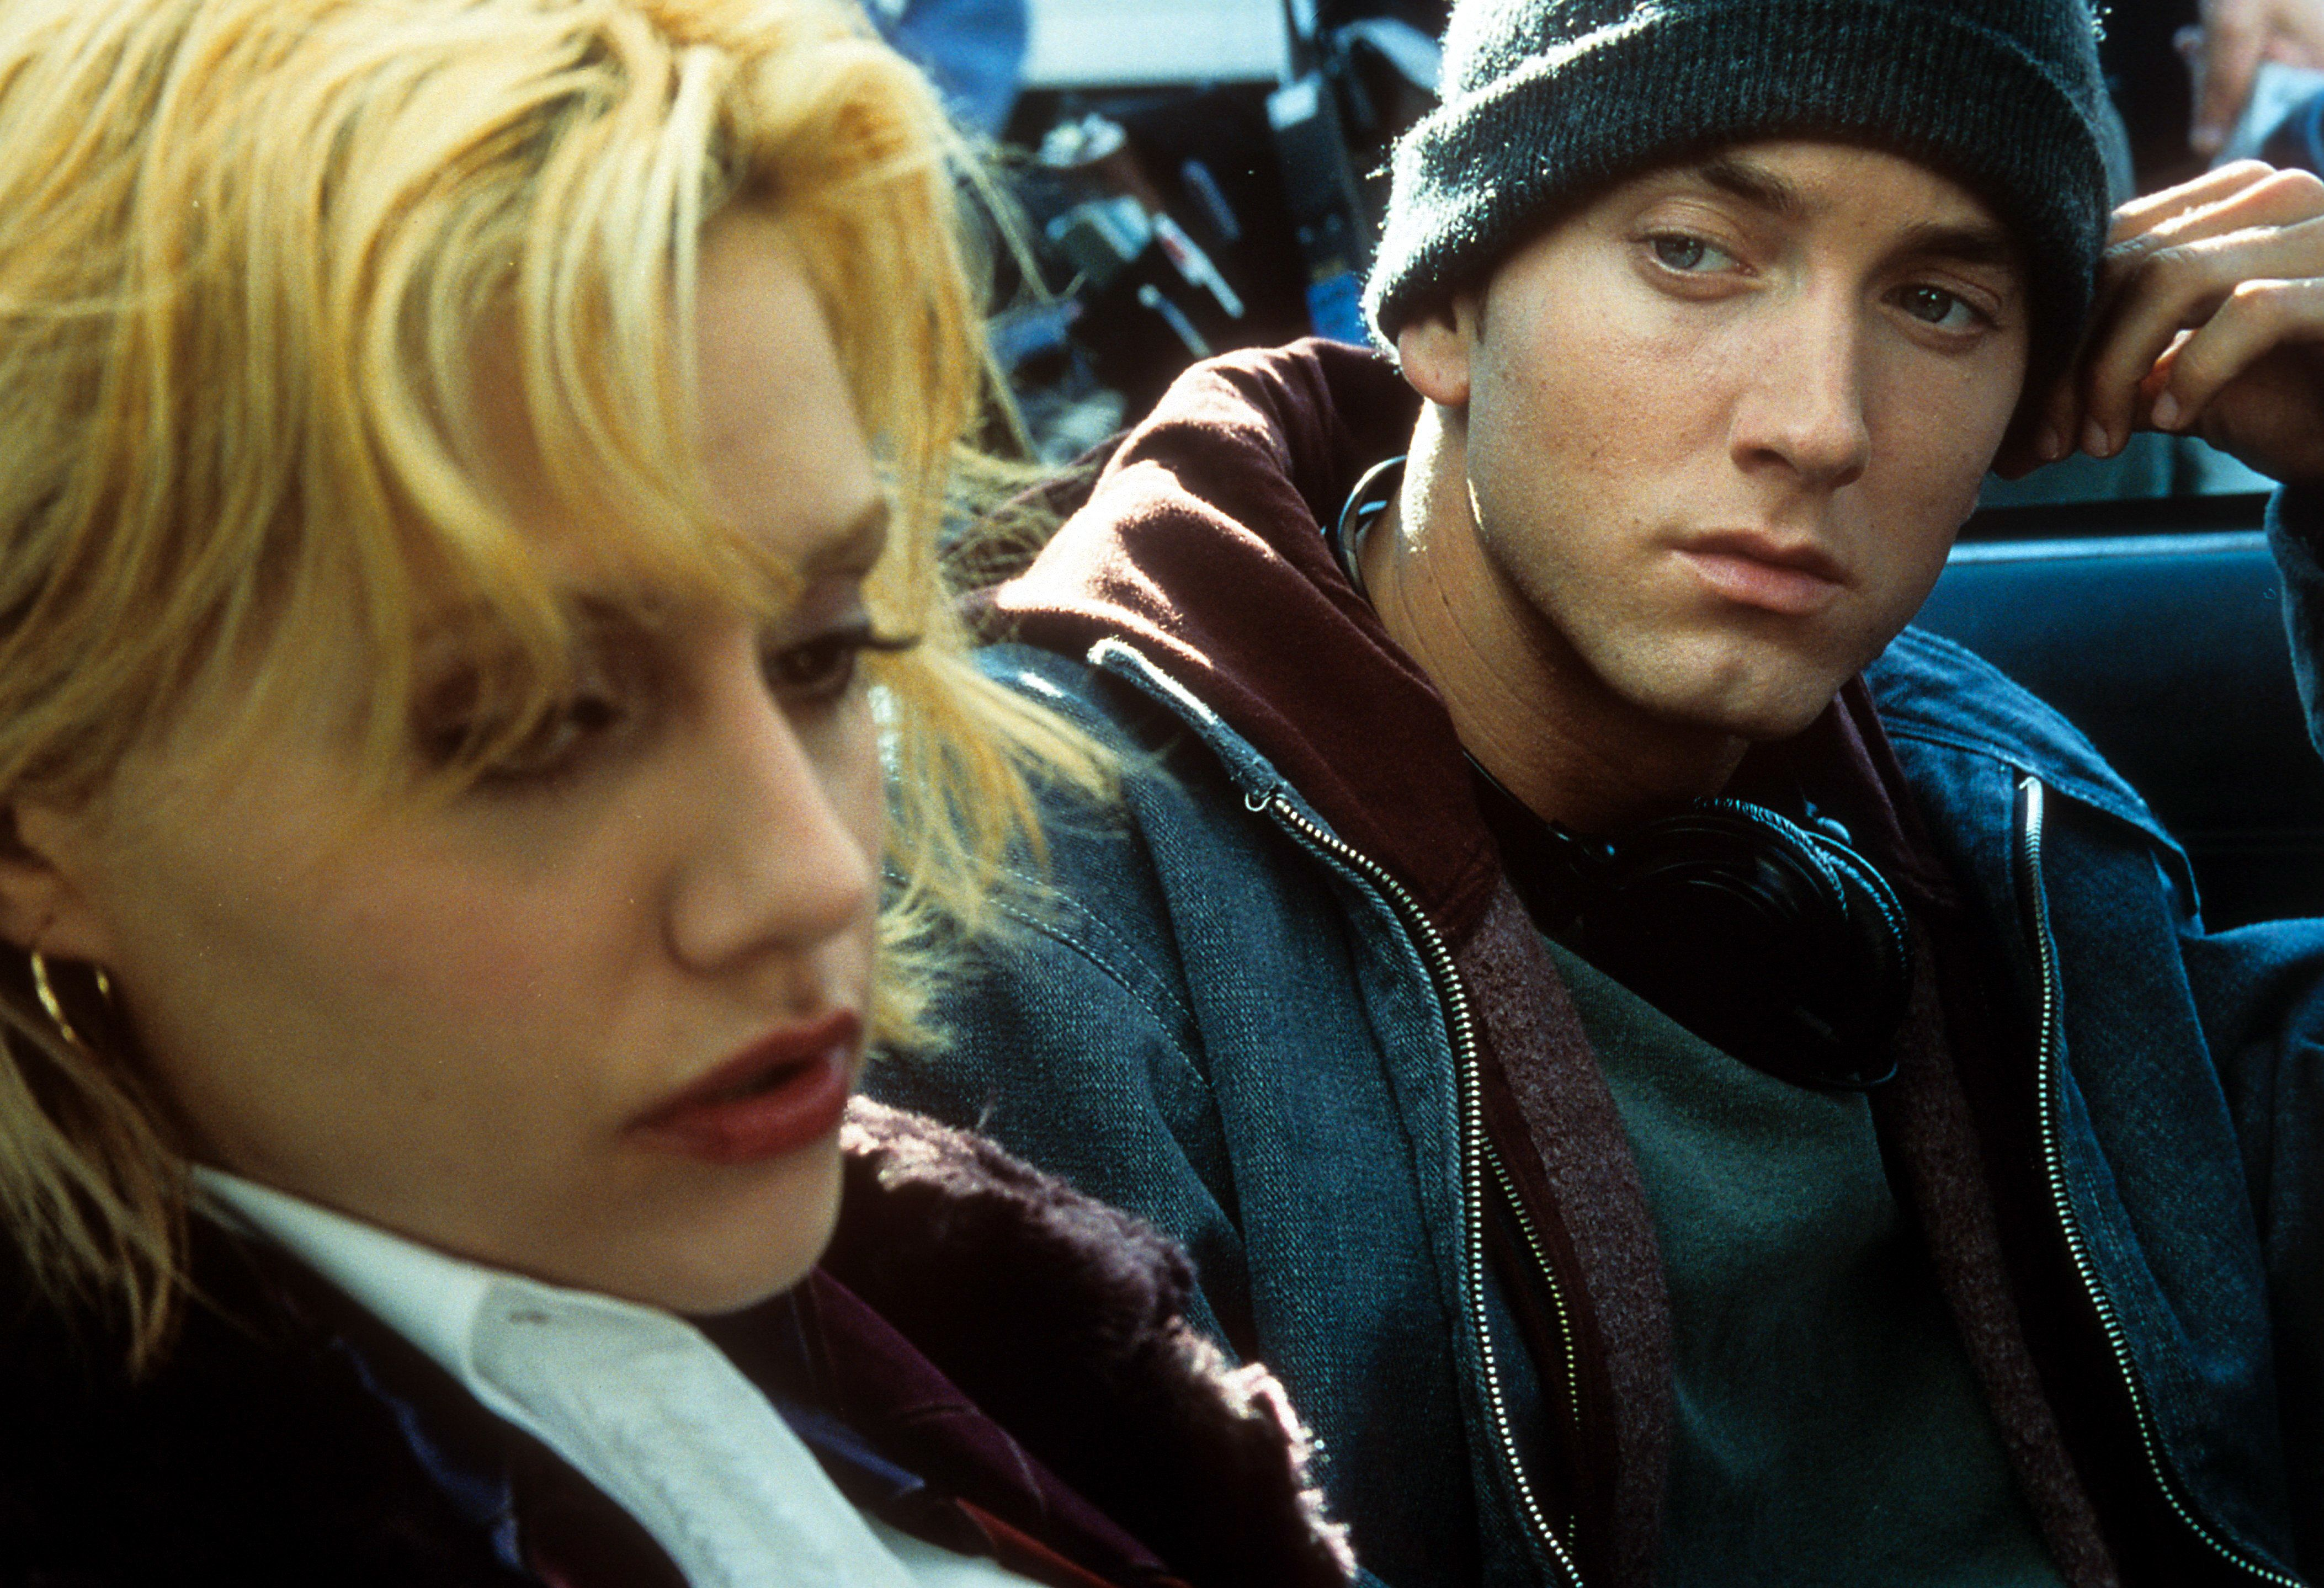 Eminem looking over at Brittany Murphy in a scene from the film '8 Mile', 2002. (Photo by Universal/Getty Images)